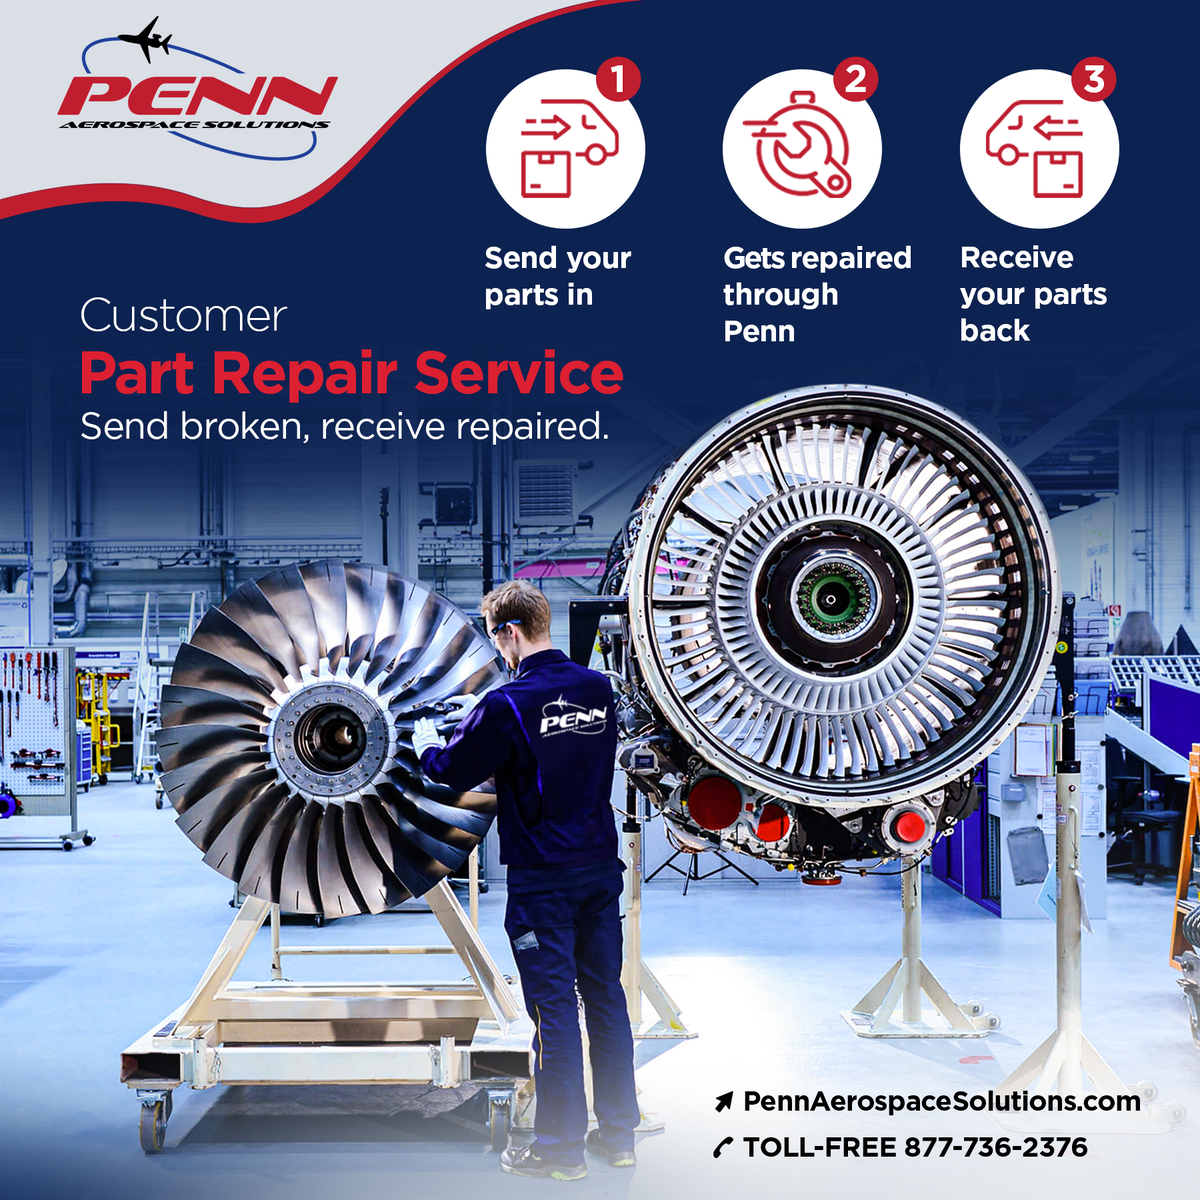 Need a part repaired instead of replaced?  Contact us today to find out about out aircraft part repair service. https://t.co/QxKjmruFDx  #aerospace #aviation #aircraft #flying #businessaviation #privatejet #airline #aircraftengineer #pilot #selffly #bushpilot #avgeek https://t.co/tXSOWQgn0h